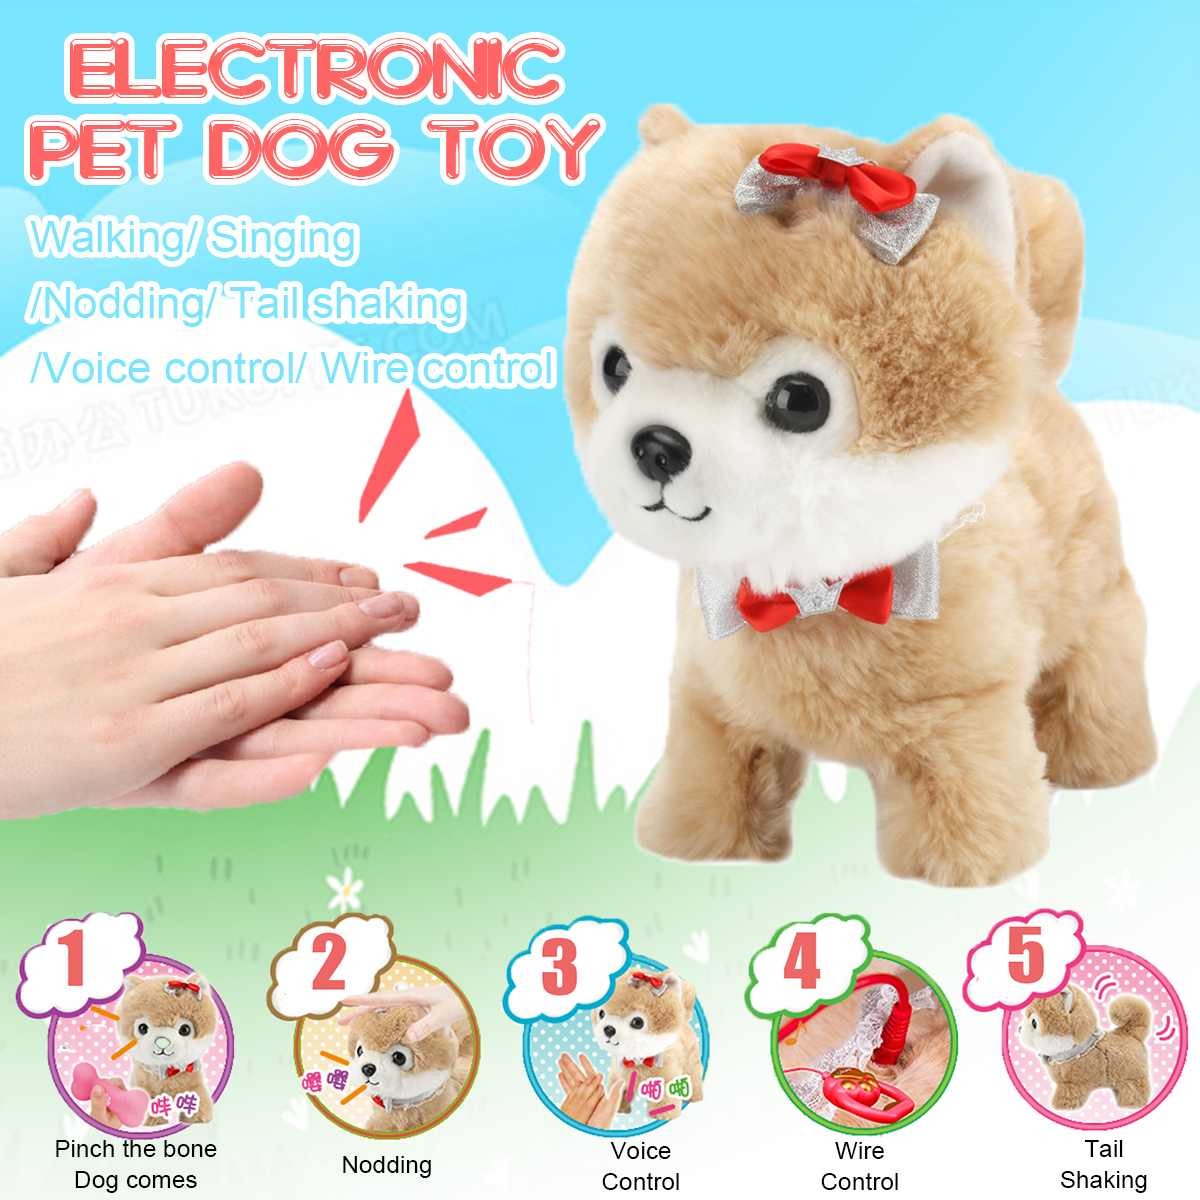 Robot Dog Sound Control Interactive Dog Electronic Toy Plush Puppy Pet Walk Bark Leash Teddy Toy For Kids Children Birthday Gift